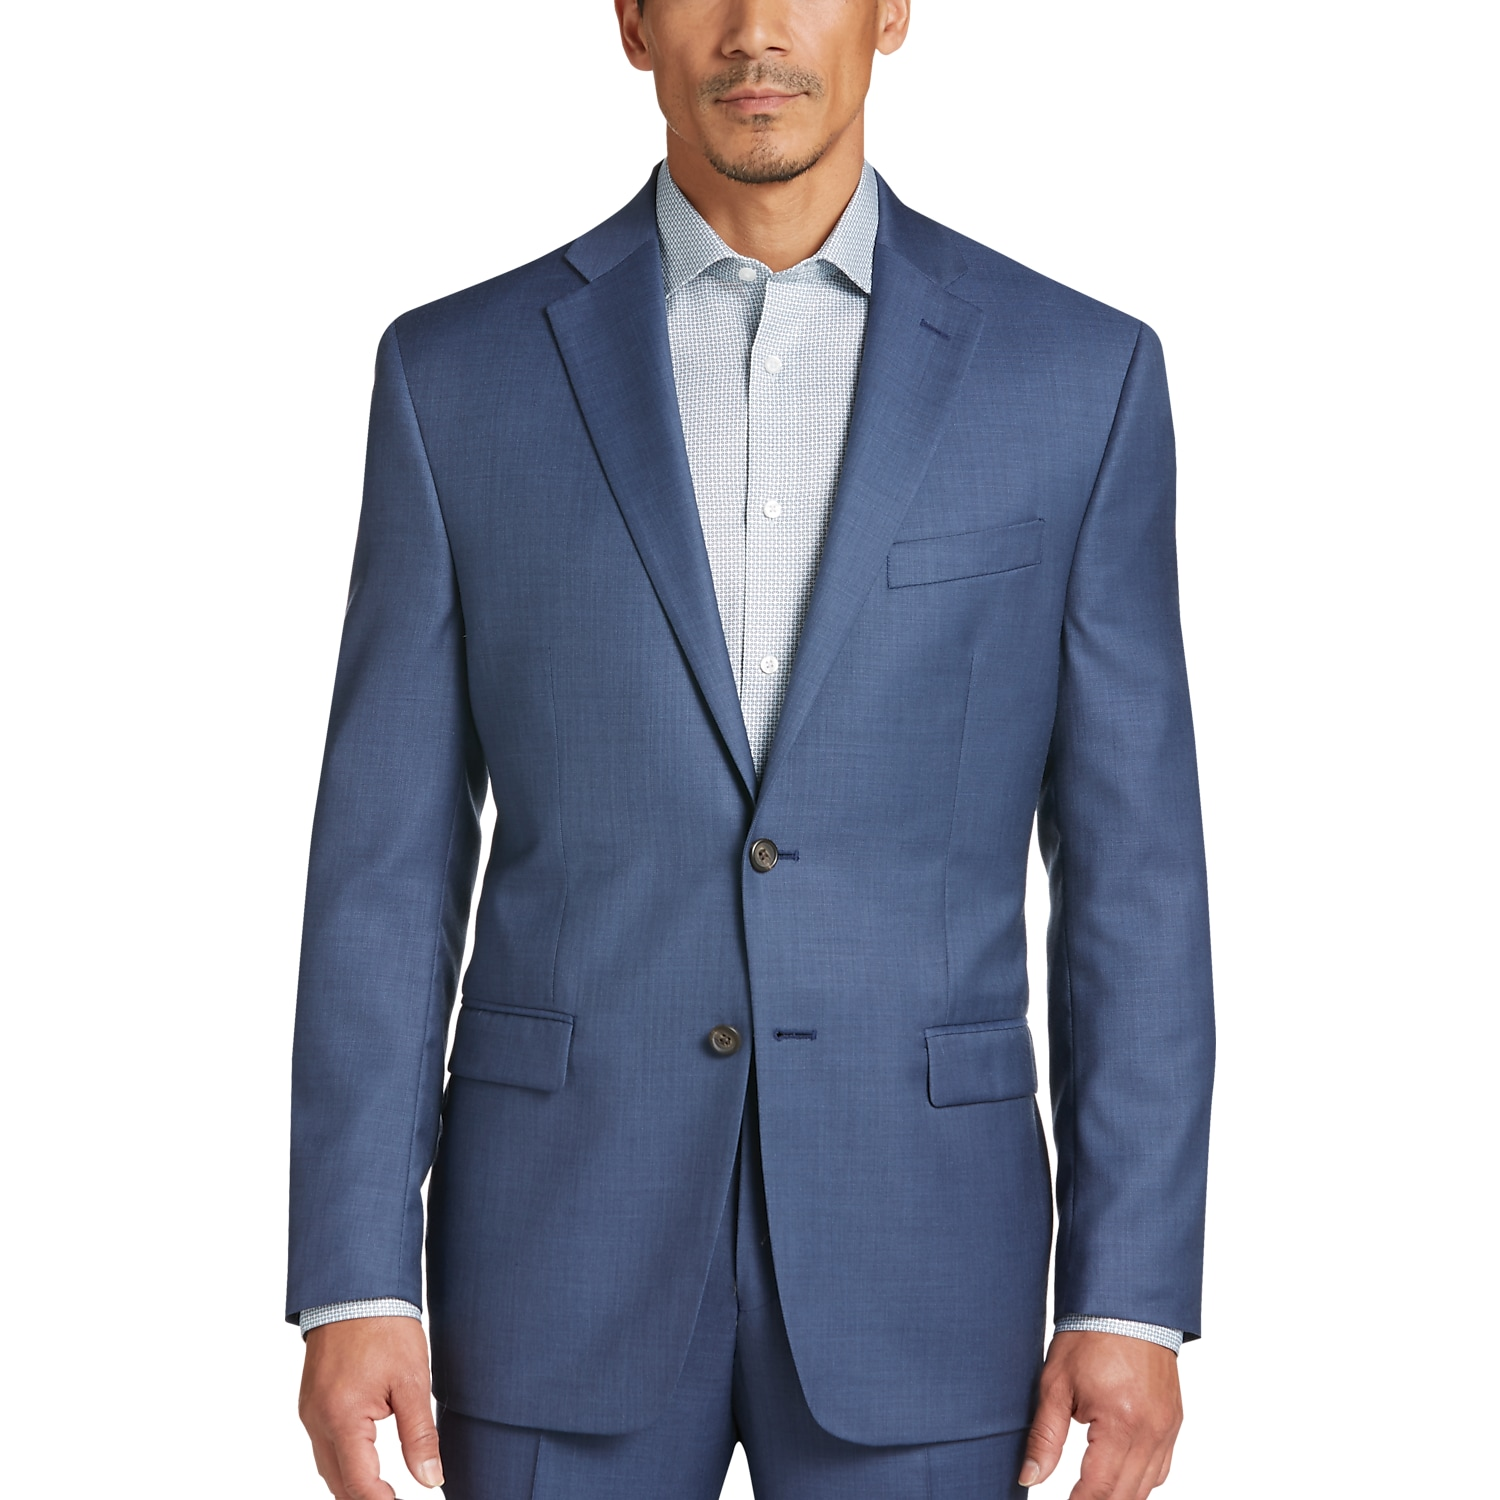 Men\'s Suits - Top Suit Shop Online | Men\'s Wearhouse